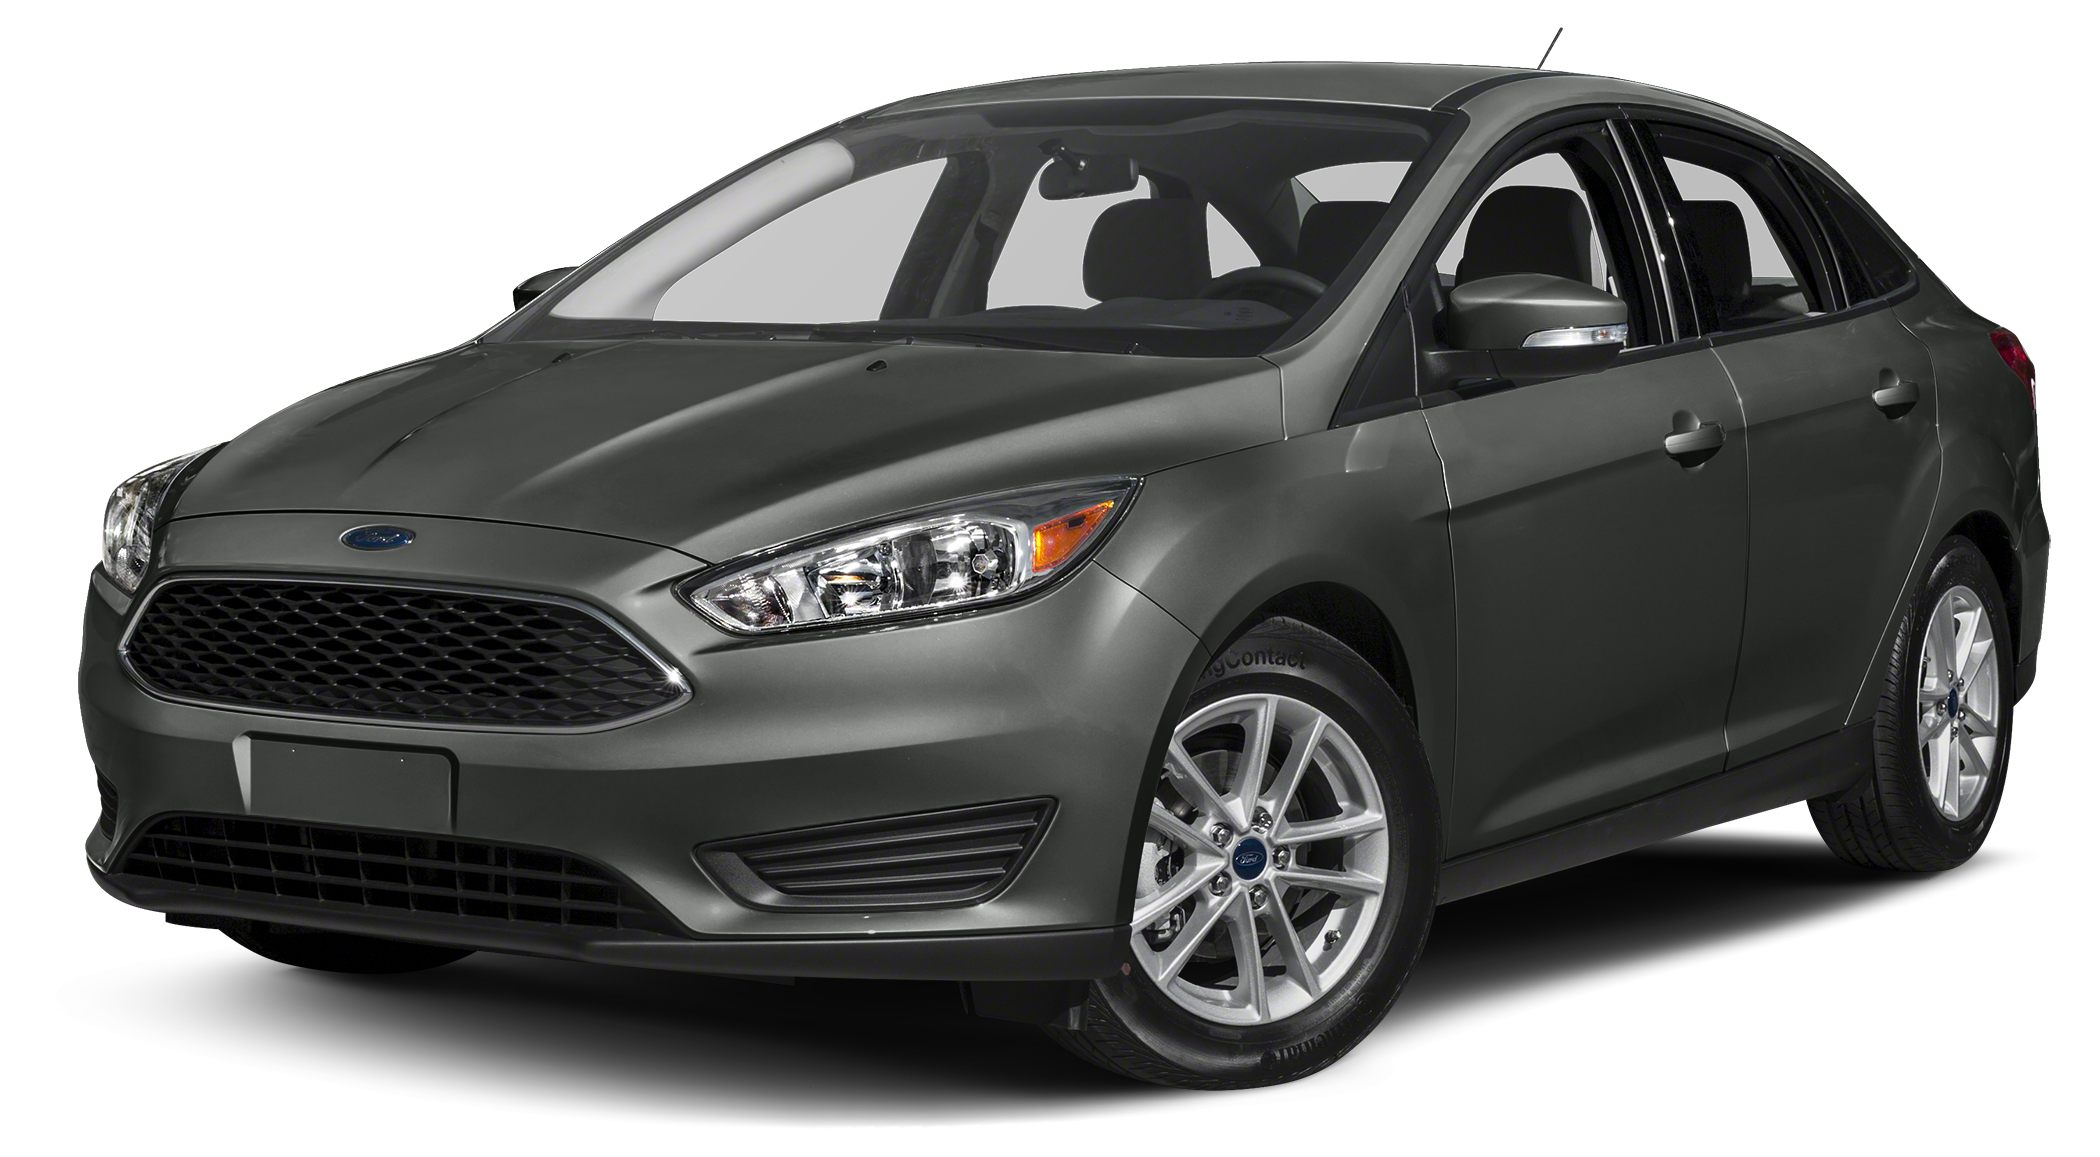 2017 Ford Focus SE 4864 off MSRP Priced below KBB Fair Purchase Price 4030 HighwayCity MPG M